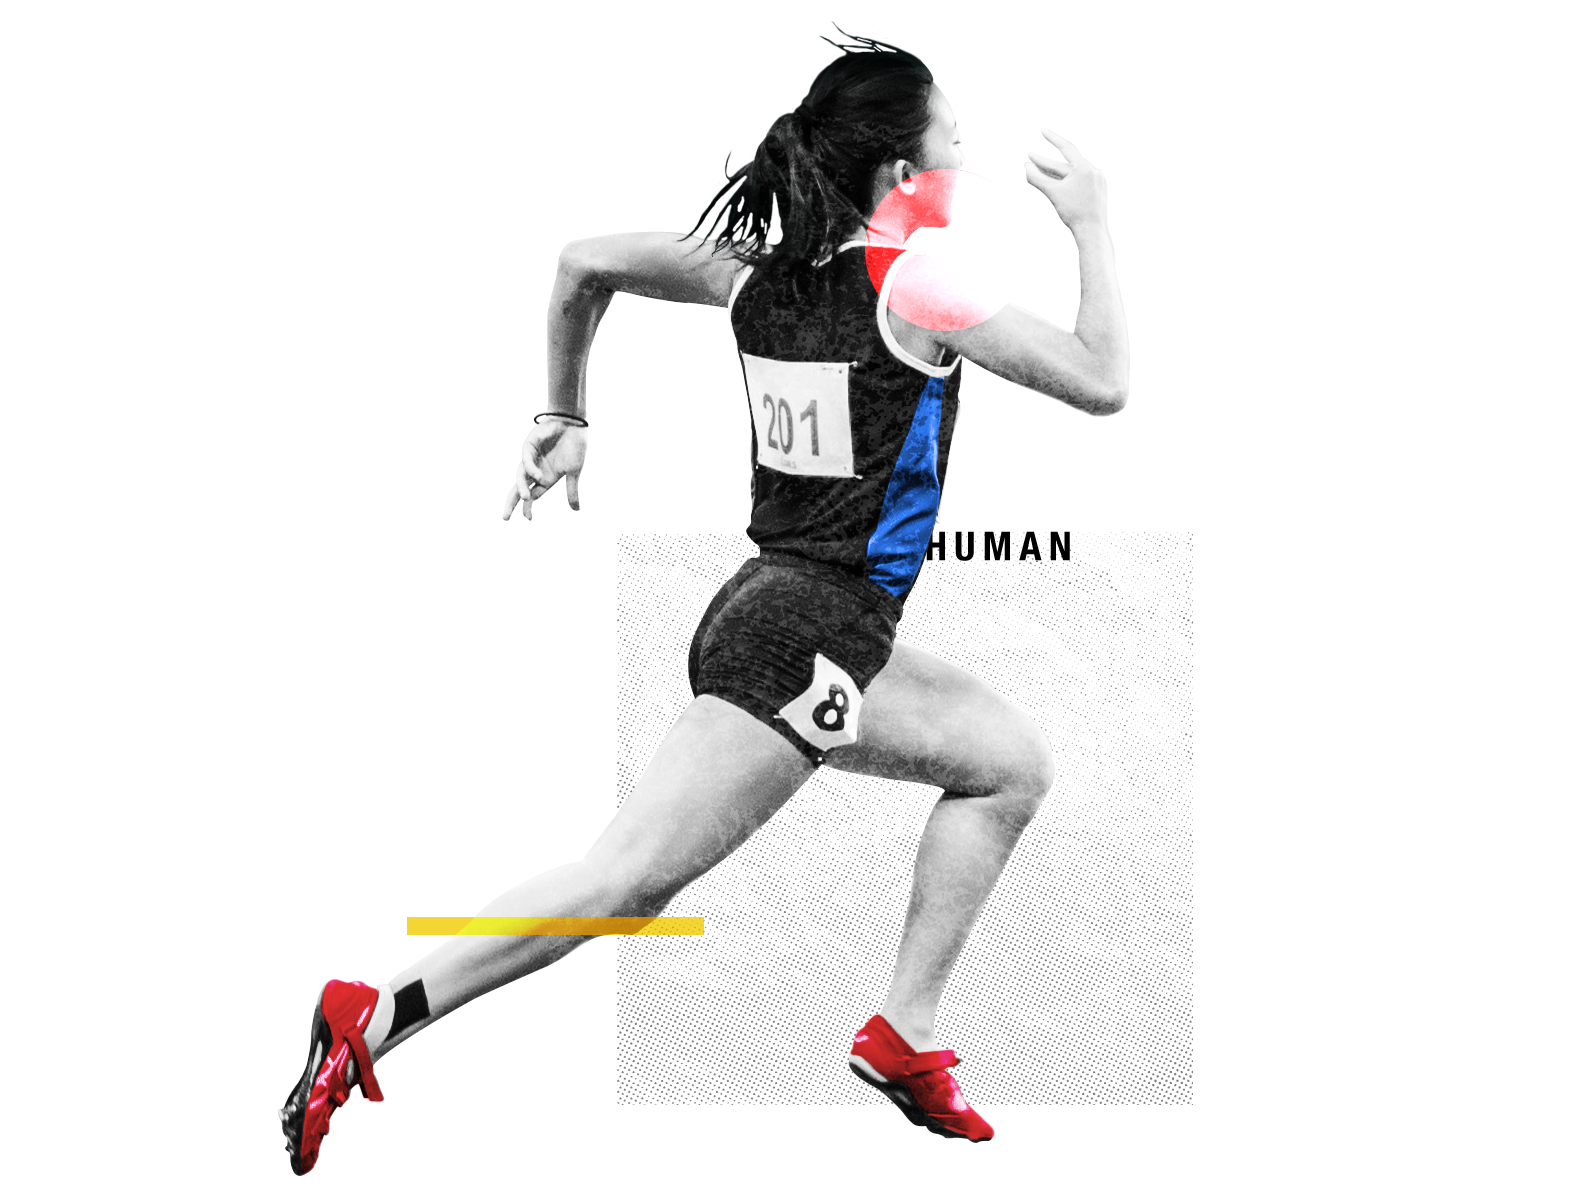 HUMAN_Runner_b-w_cropped_071019.png